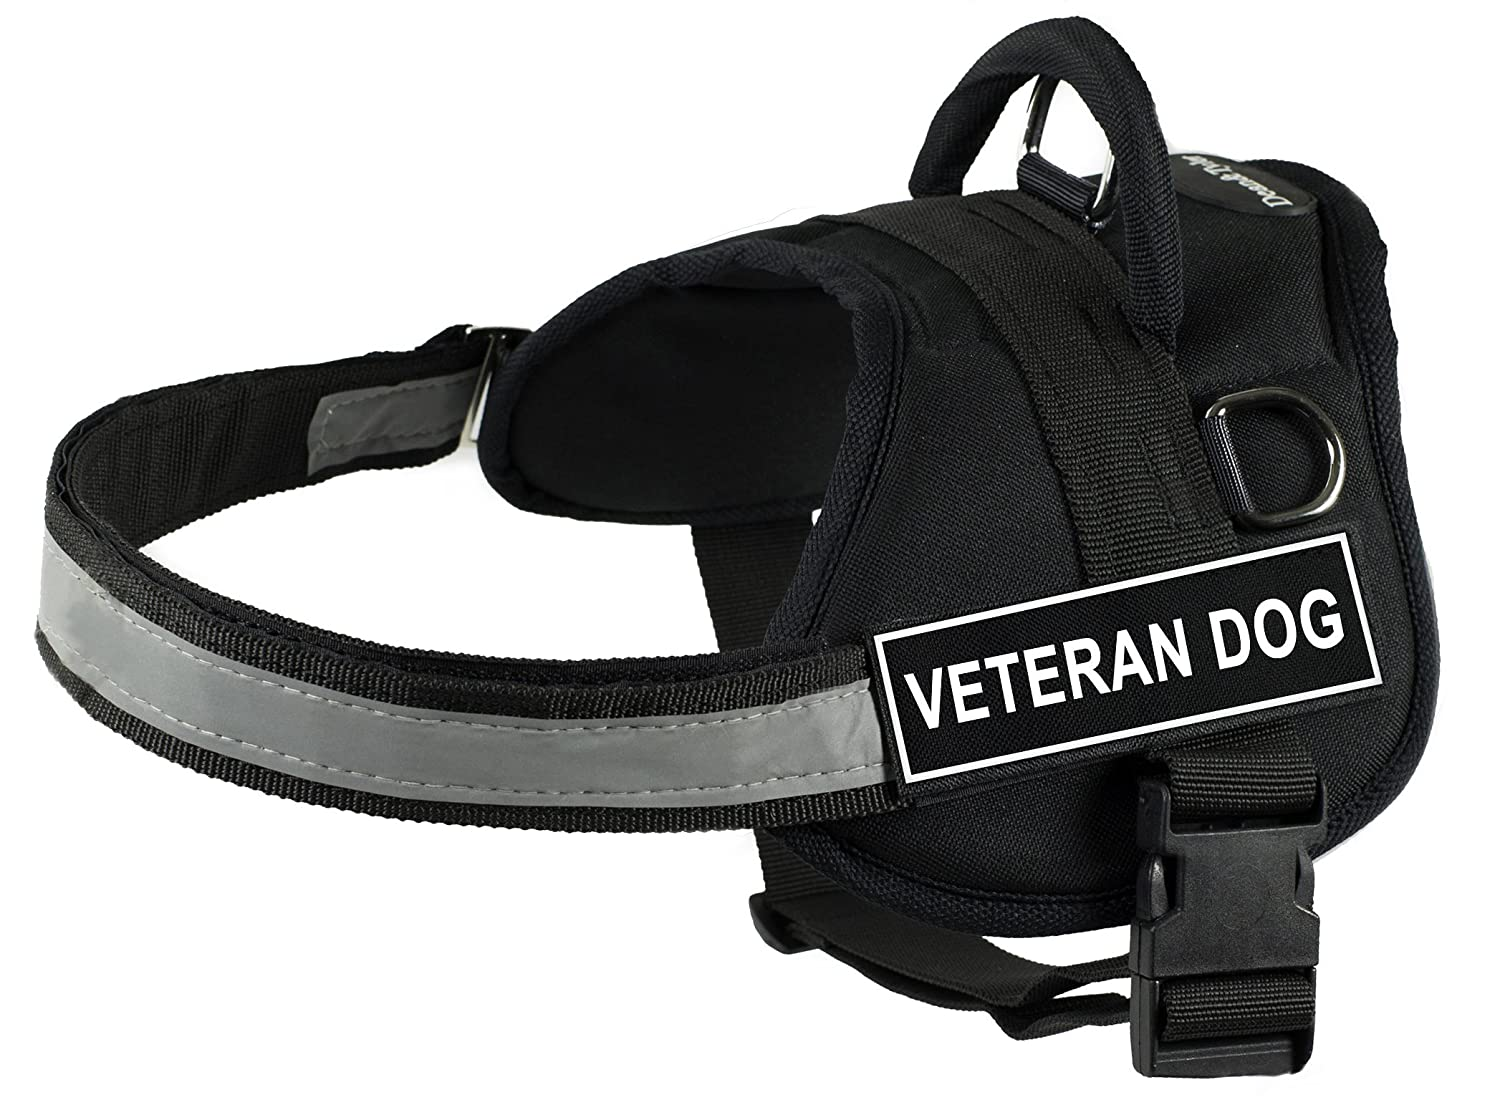 Dean & Tyler 25-Inch to 34-Inch Pet Harness, Small, Veteran Dog, Black